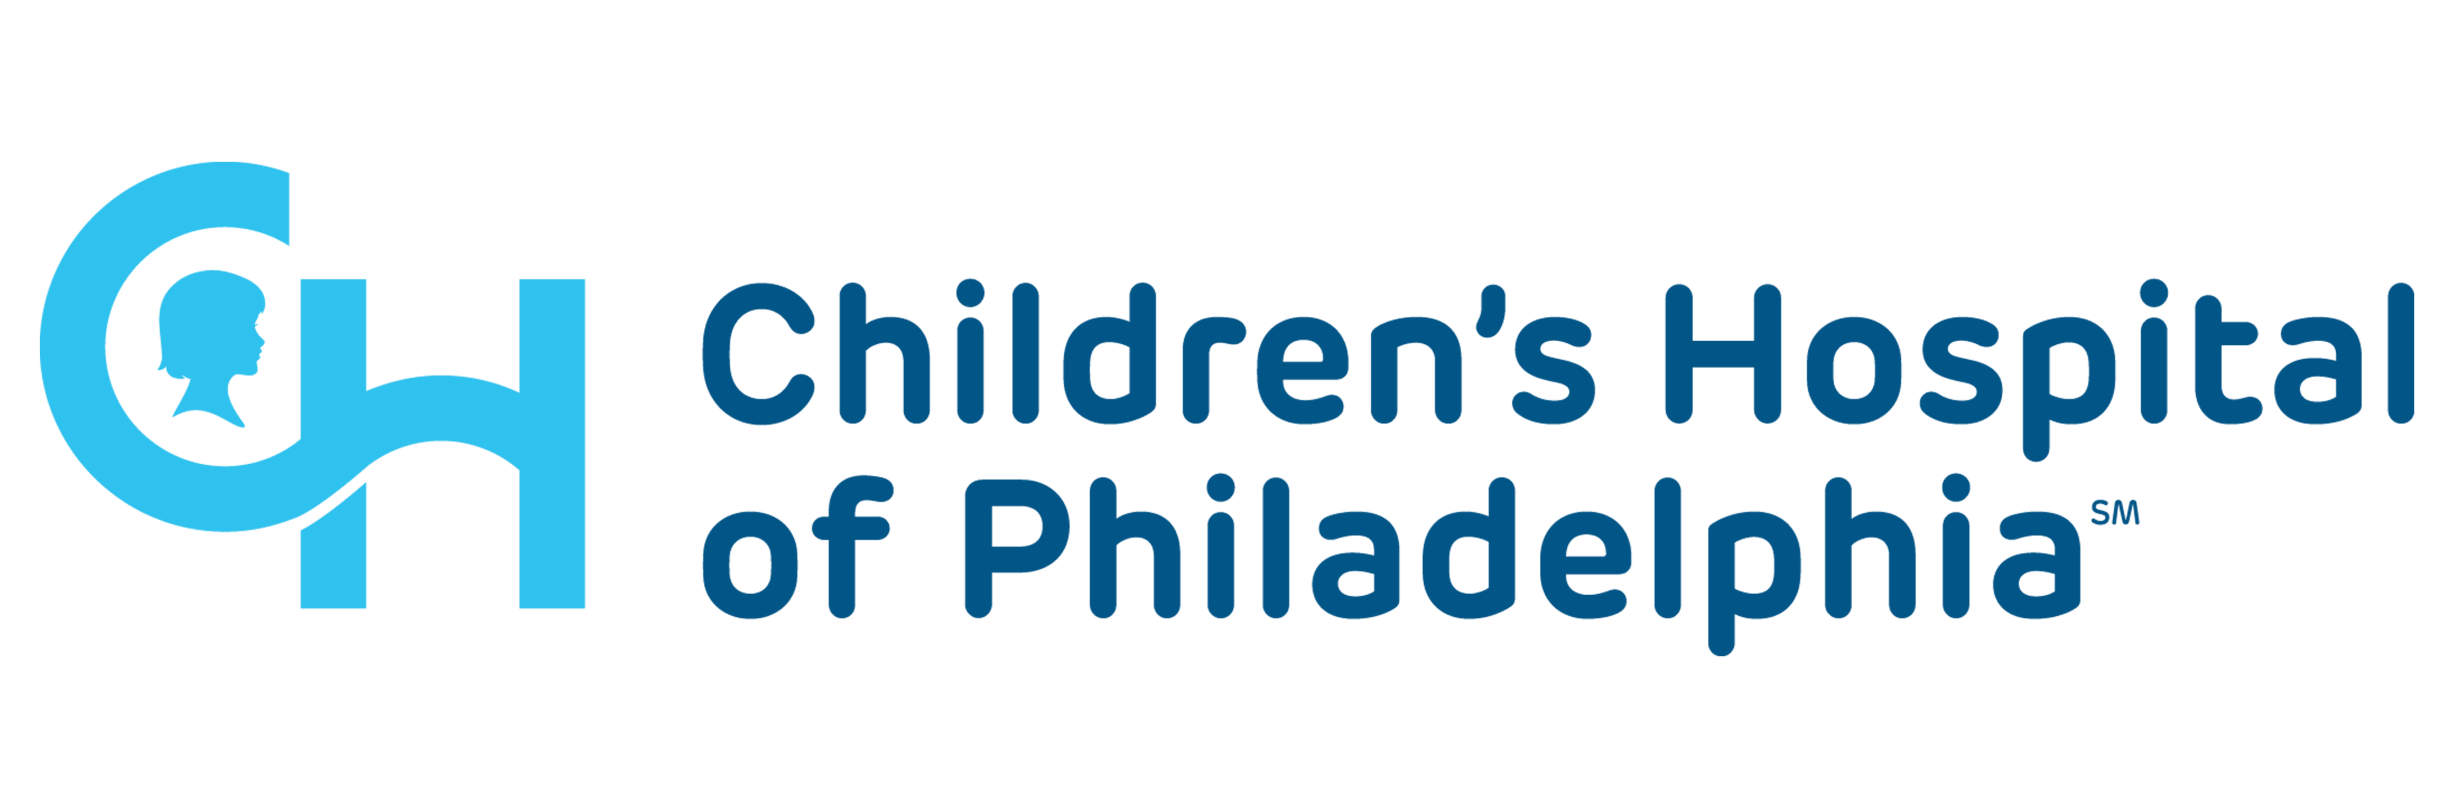 Children's hospital of phialdelphia logo